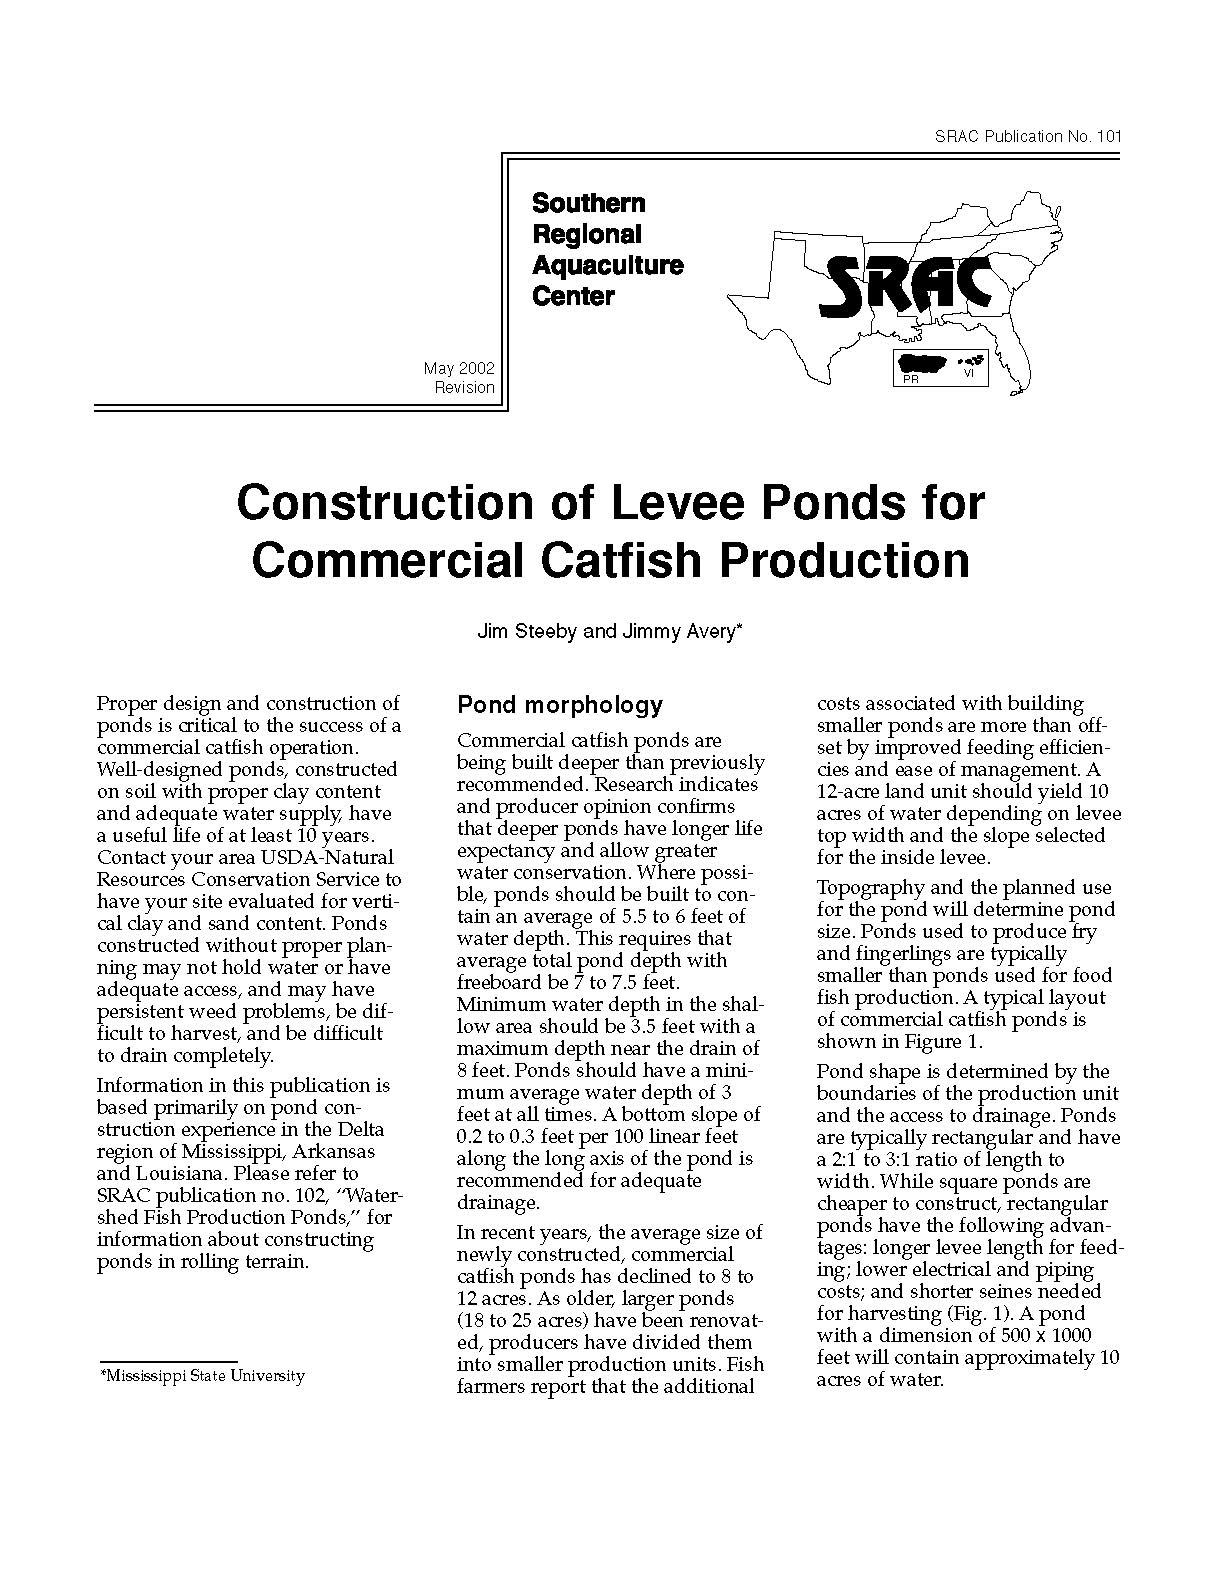 Construction of Levee Ponds for Commercial Catfish Production